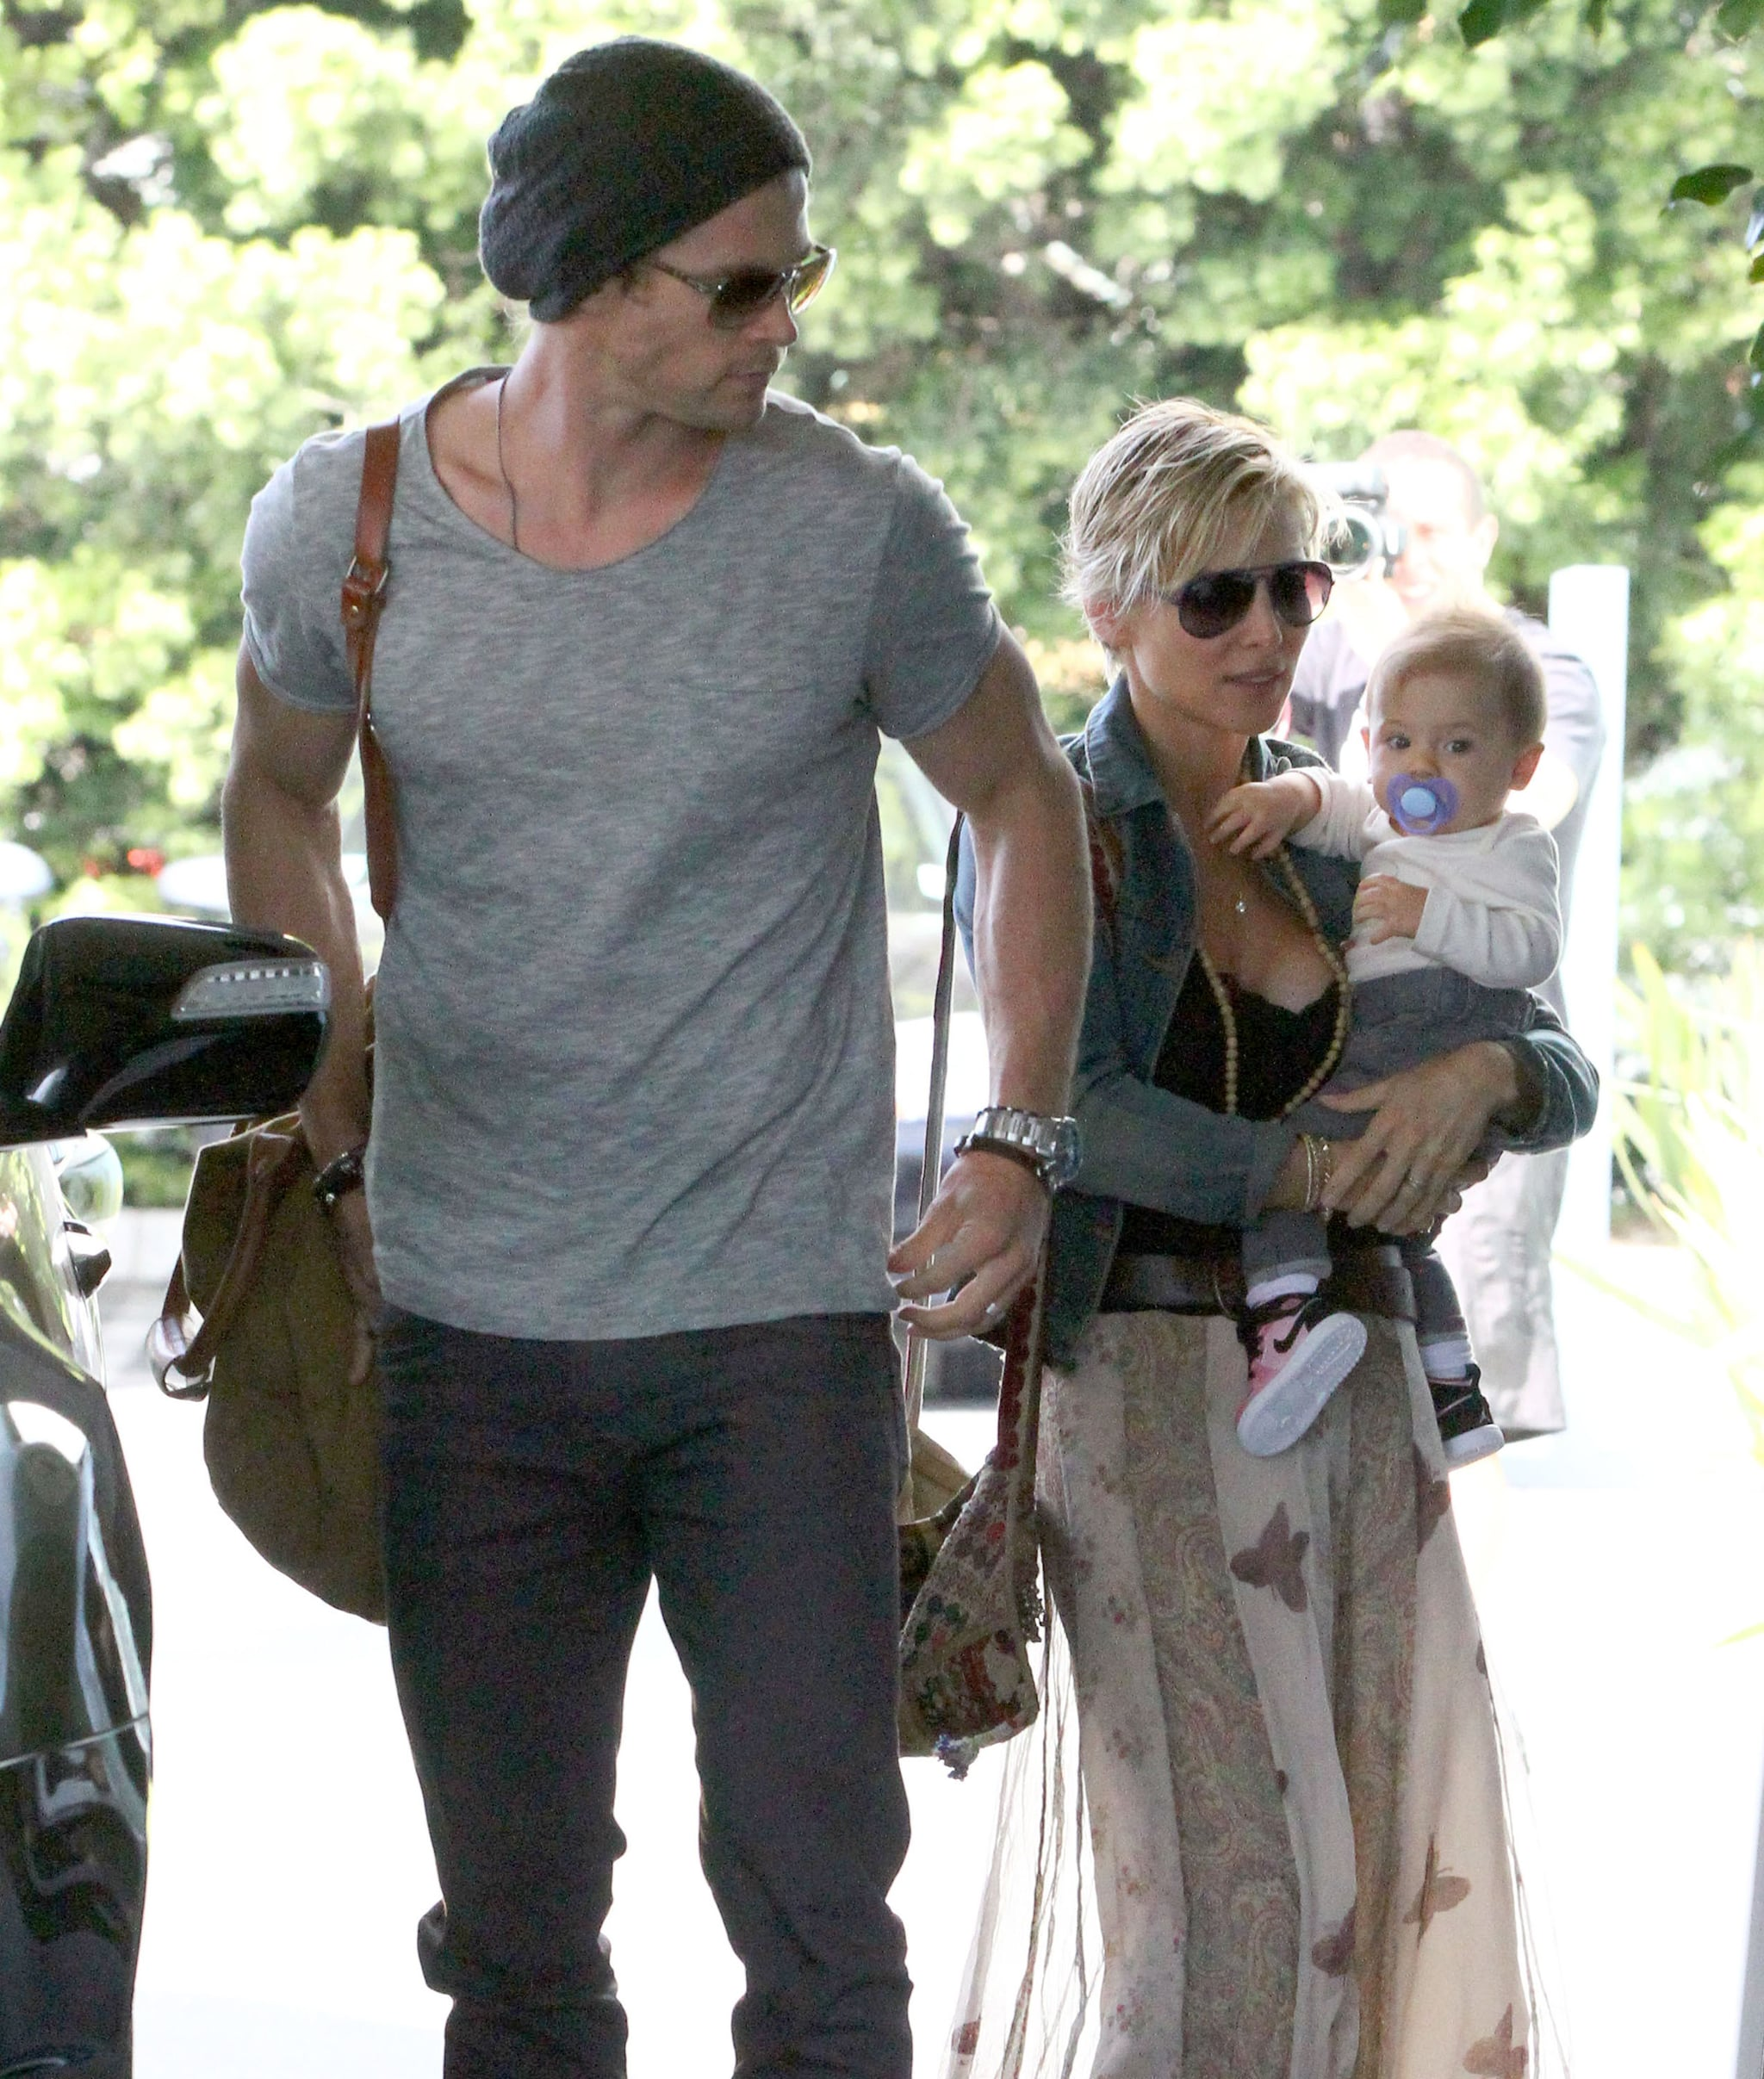 Chris Hemsworth spent time with his wife, Elsa Pataky, and daughter India Hemsworth in Santa Monica on Saturday.